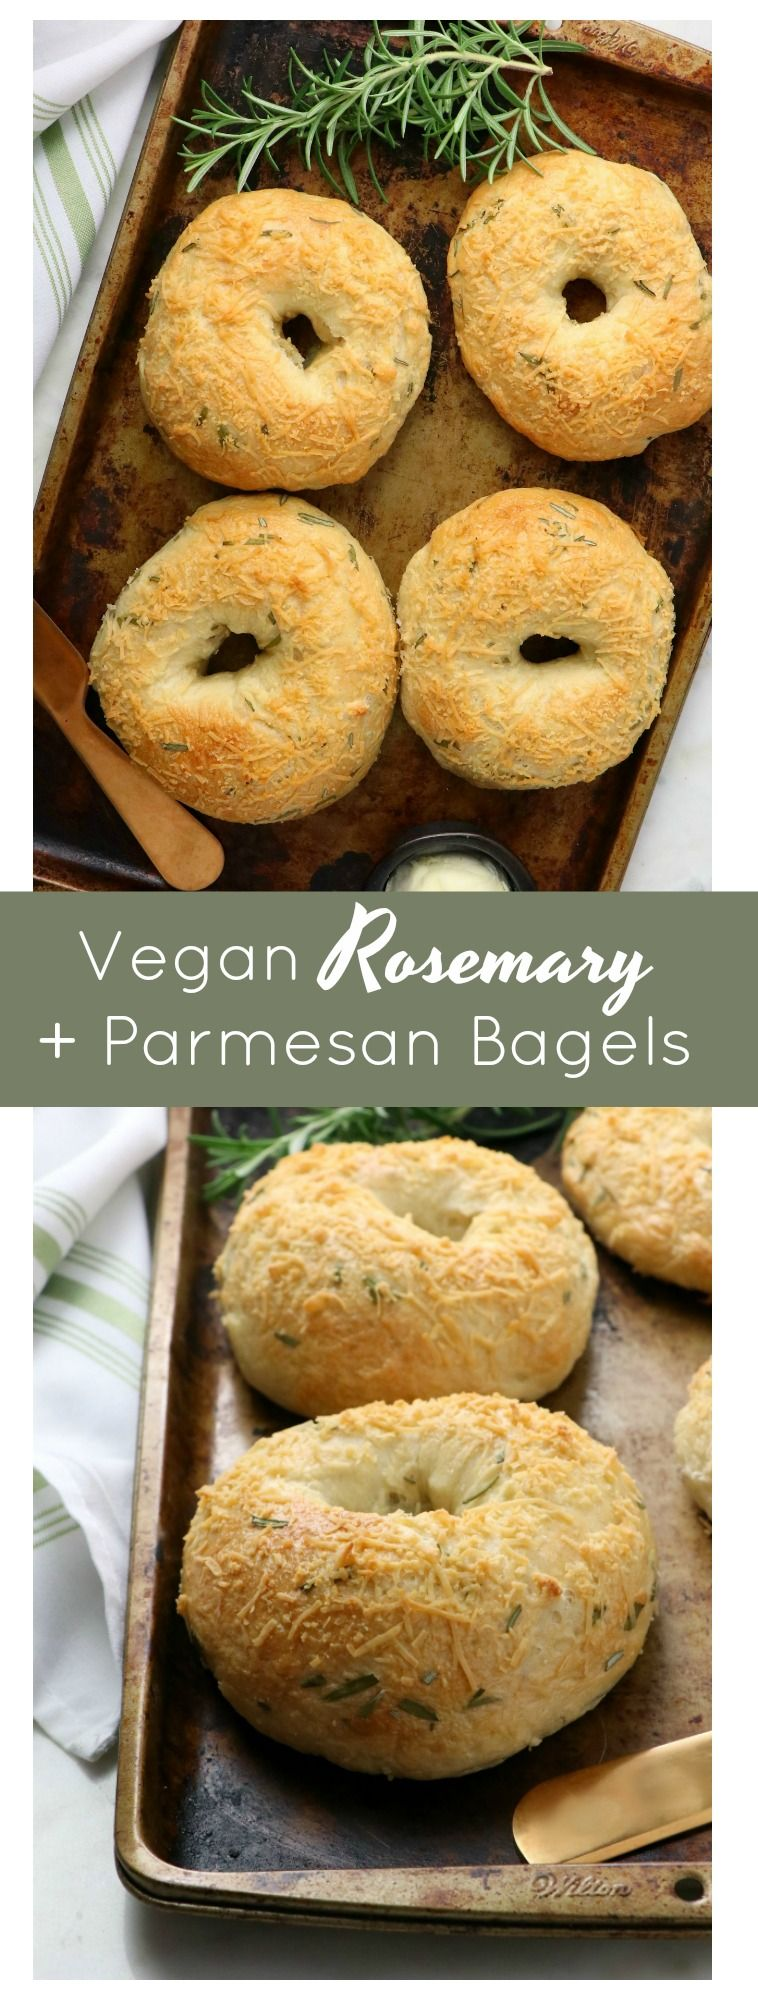 Vegan Rosemary Parmesan Bagels Eat Drink Shrink Recipe In 2020 Food Recipes Vegan